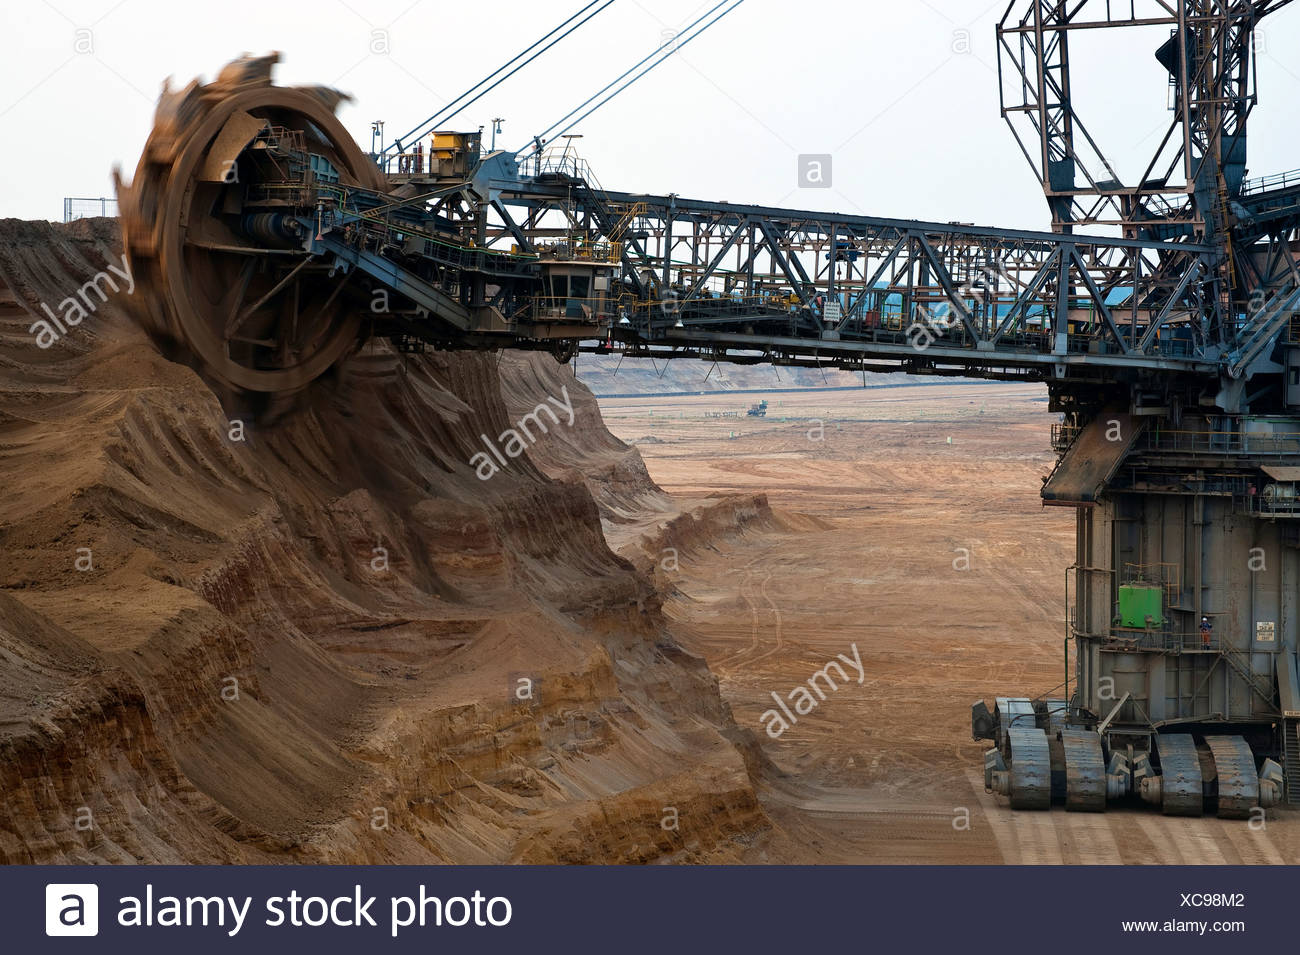 Bucket-wheel excavator on the slope of the open pit, Grevenbroich, North Rhine-Westphalia, Germany, Europe - Stock Image